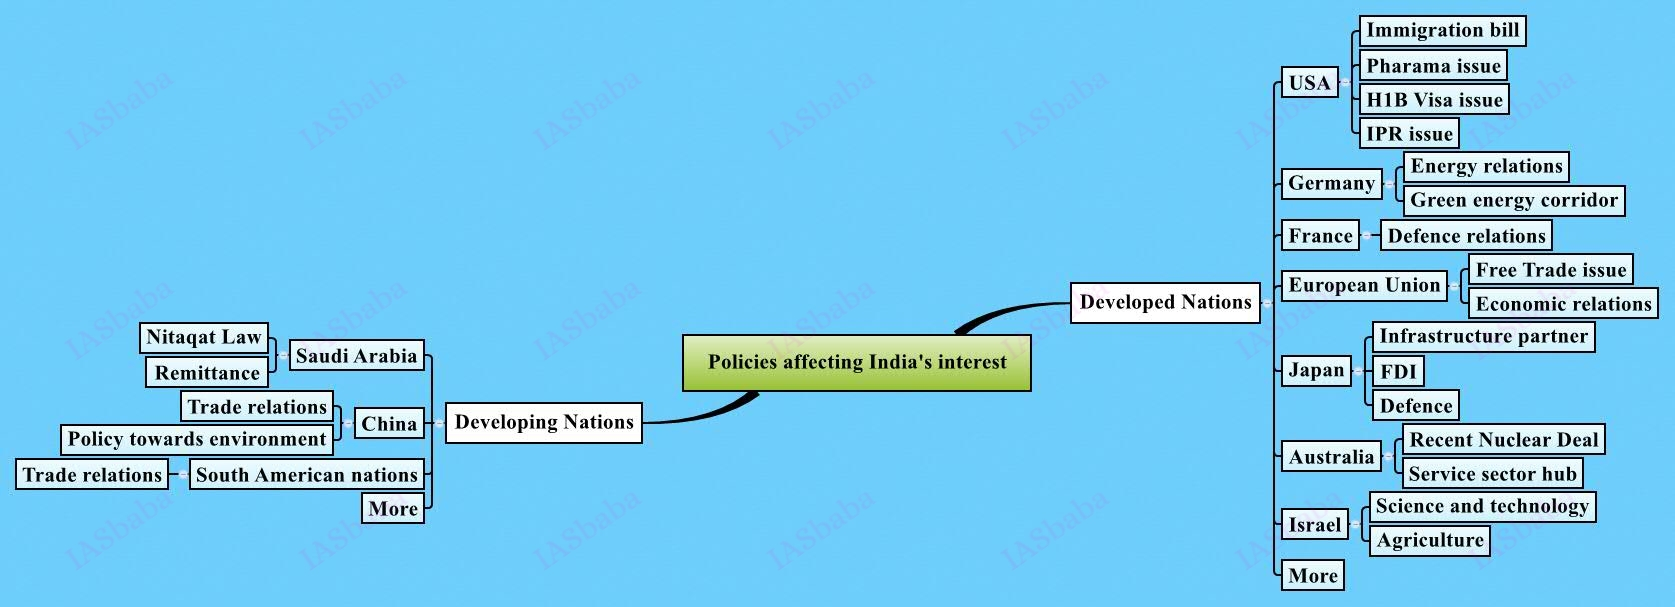 Policies affecting India's interest